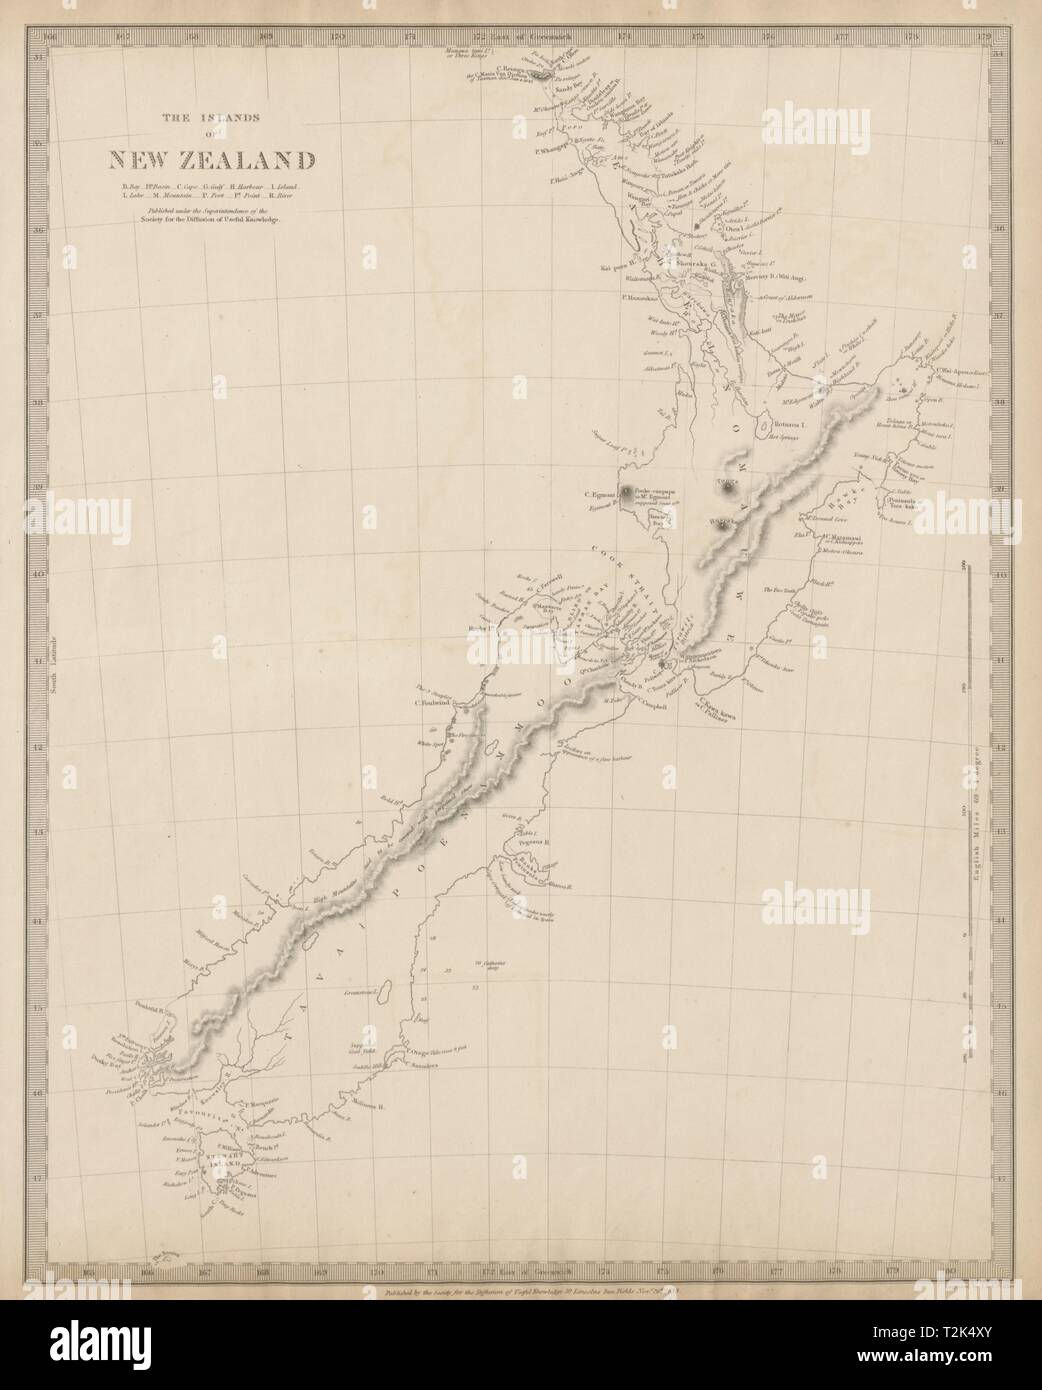 New Zealand Maori Map.Pre European Maori New Zealand Tavai Poenammoo Eaheinomauwe Sduk